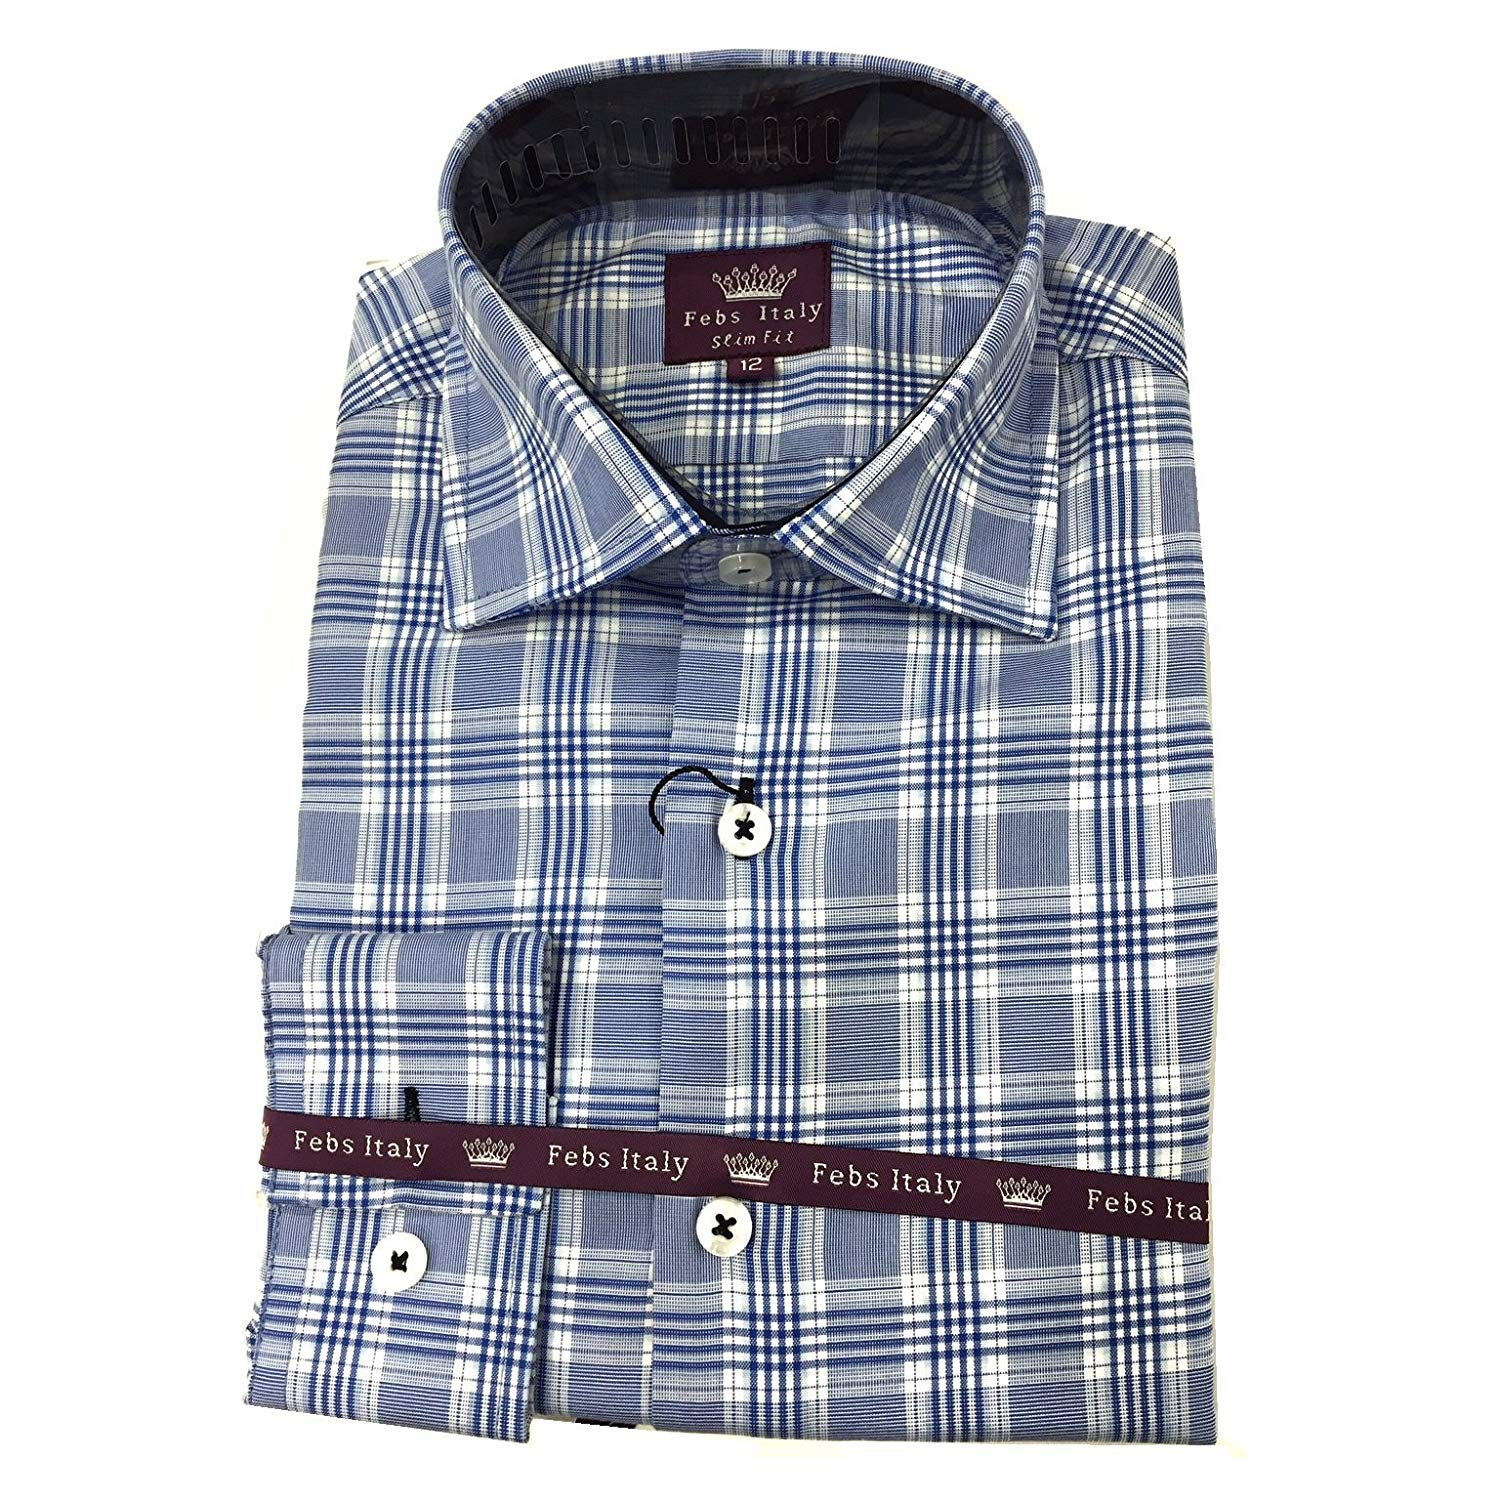 Clothing, Shoes & Accessories Casual Button-down Shirts Reasonable Tailorbyrd Mens Multi Red Plaid 100% Cotton Ls Button Dress Shirt Nwt L $98